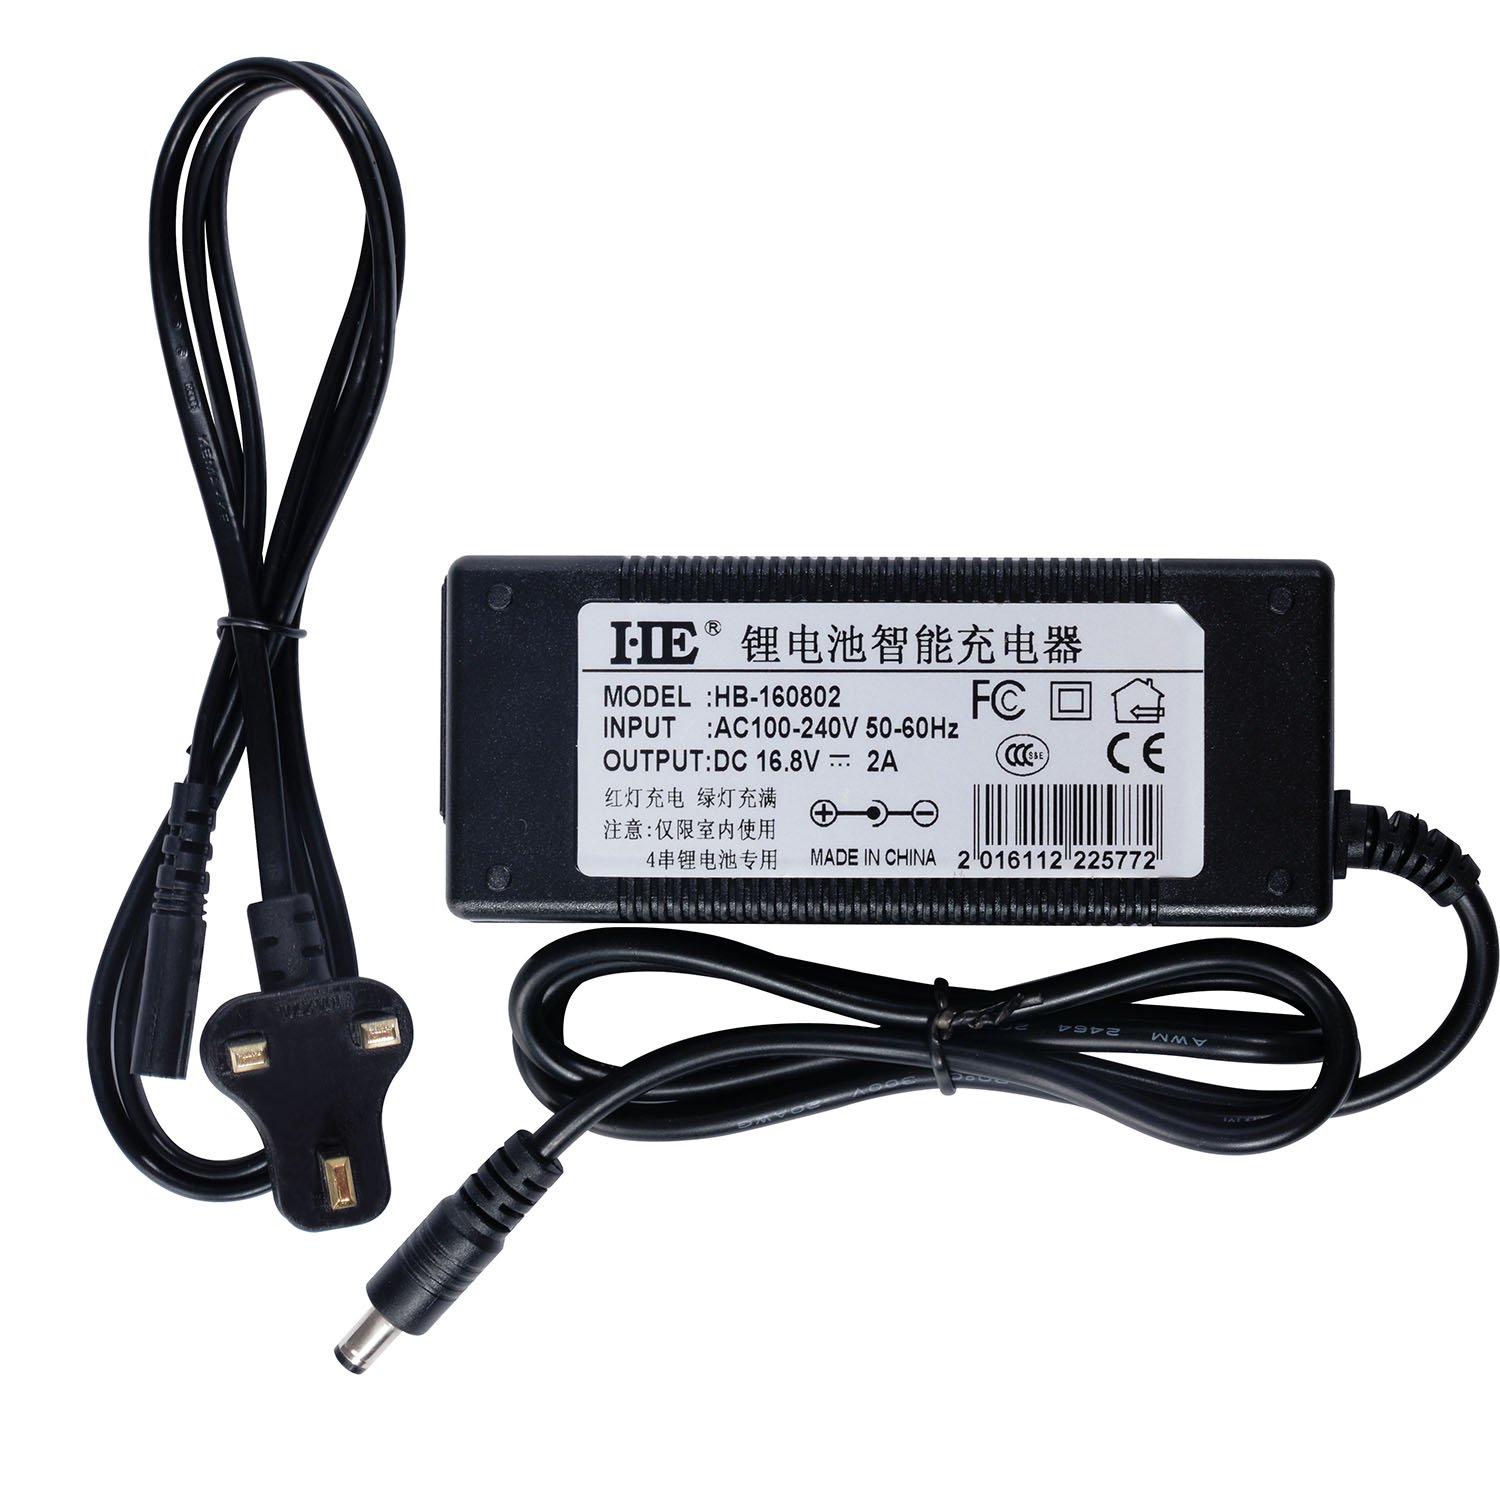 Hebang 16, 8 V 2 A Three-stages Lithium chargeur de batterie 14.4 V 14.8 V chargeur de batterie 14500 14650 17490 18500 18650 Batterie au lithium polymère 26500 Lot DC chargeur Interface 160802